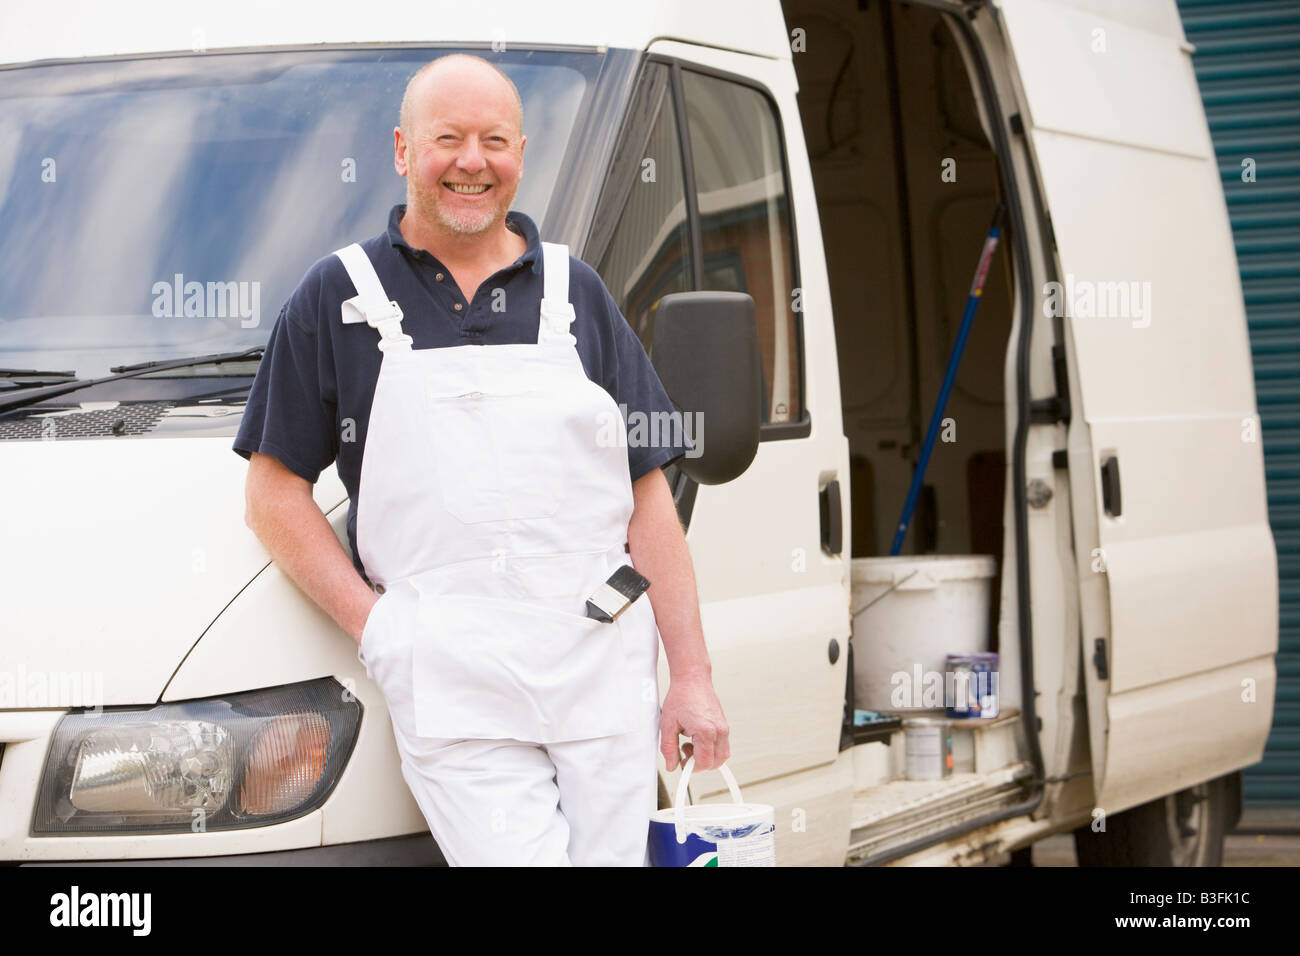 Painter standing with van smiling - Stock Image